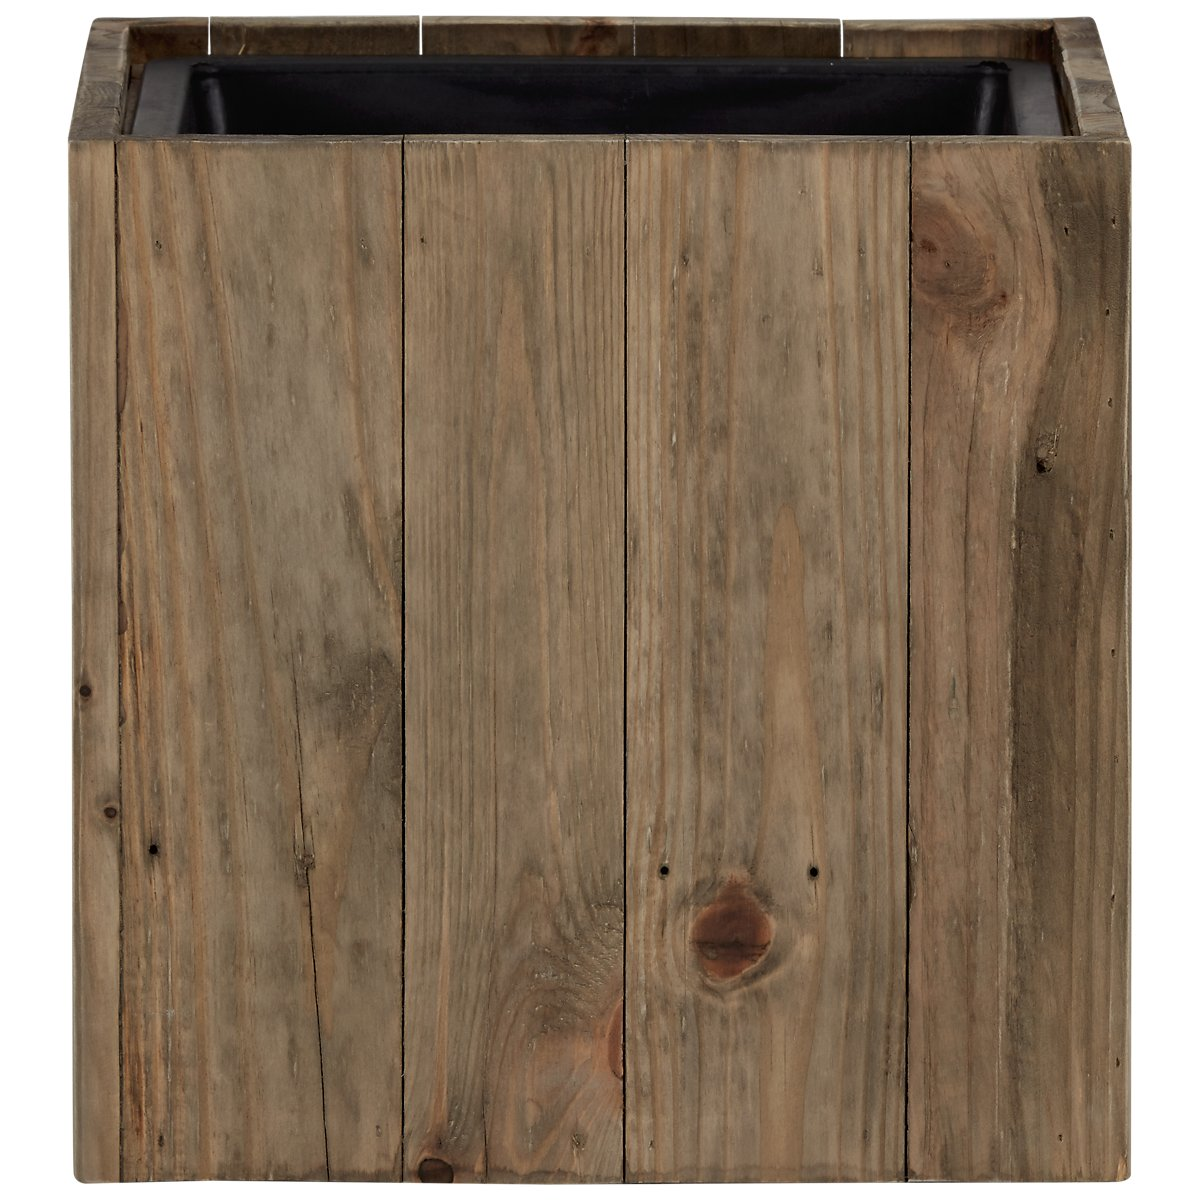 Beth Medium Wood Square Planter